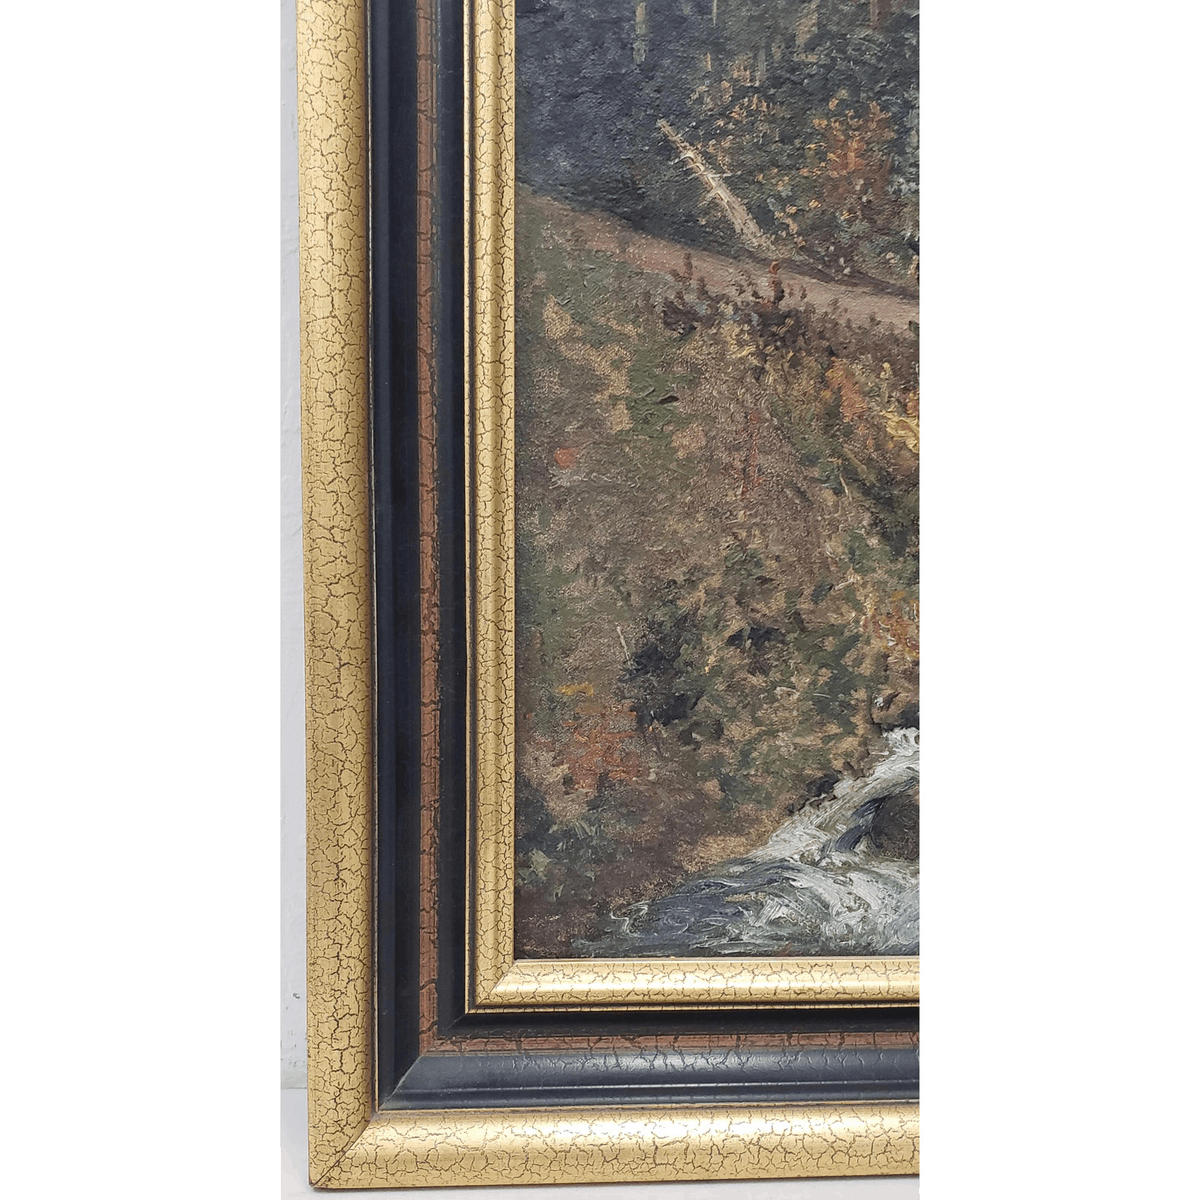 Late 19th Century Boulder Canyon Original Oil Painting By Learned C 1887 This elegant theater is located amidst shopping and dining, so you can catch a flick after your night out on the town. quintessential things